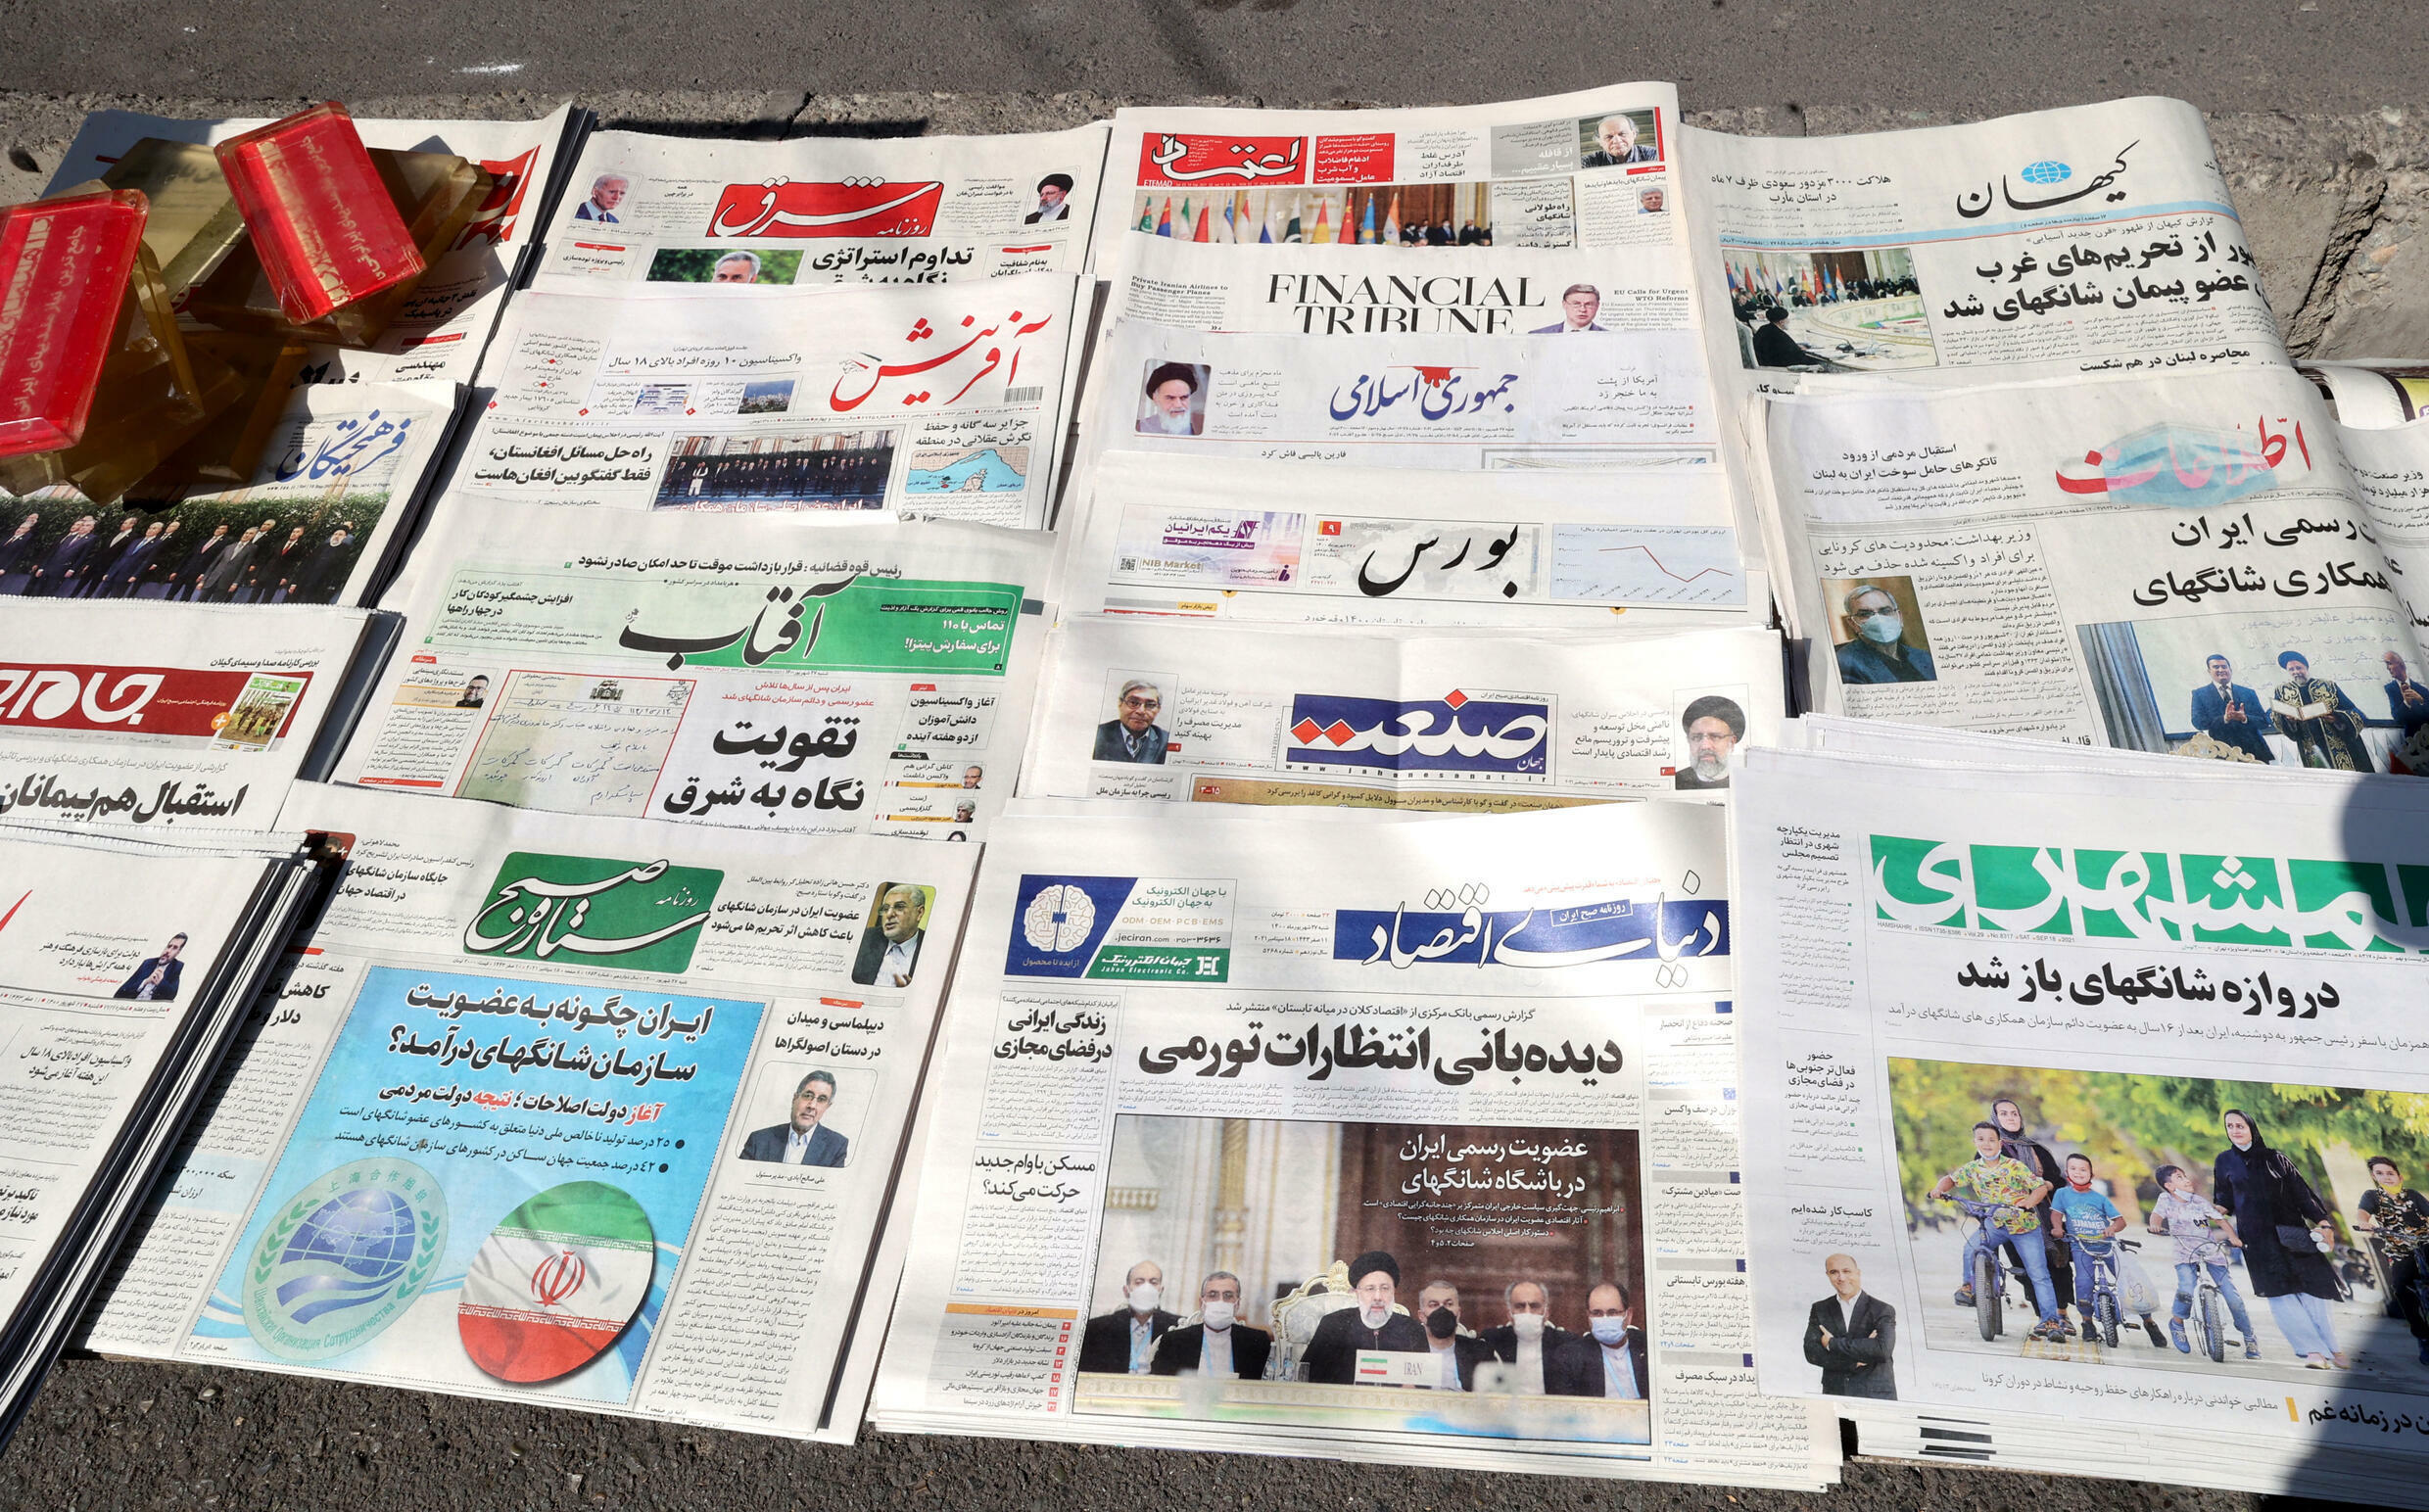 Conservative and Reformist newspapers in Iran have shown rare unity in welcoming results of Shanghai Cooperation Organization conference